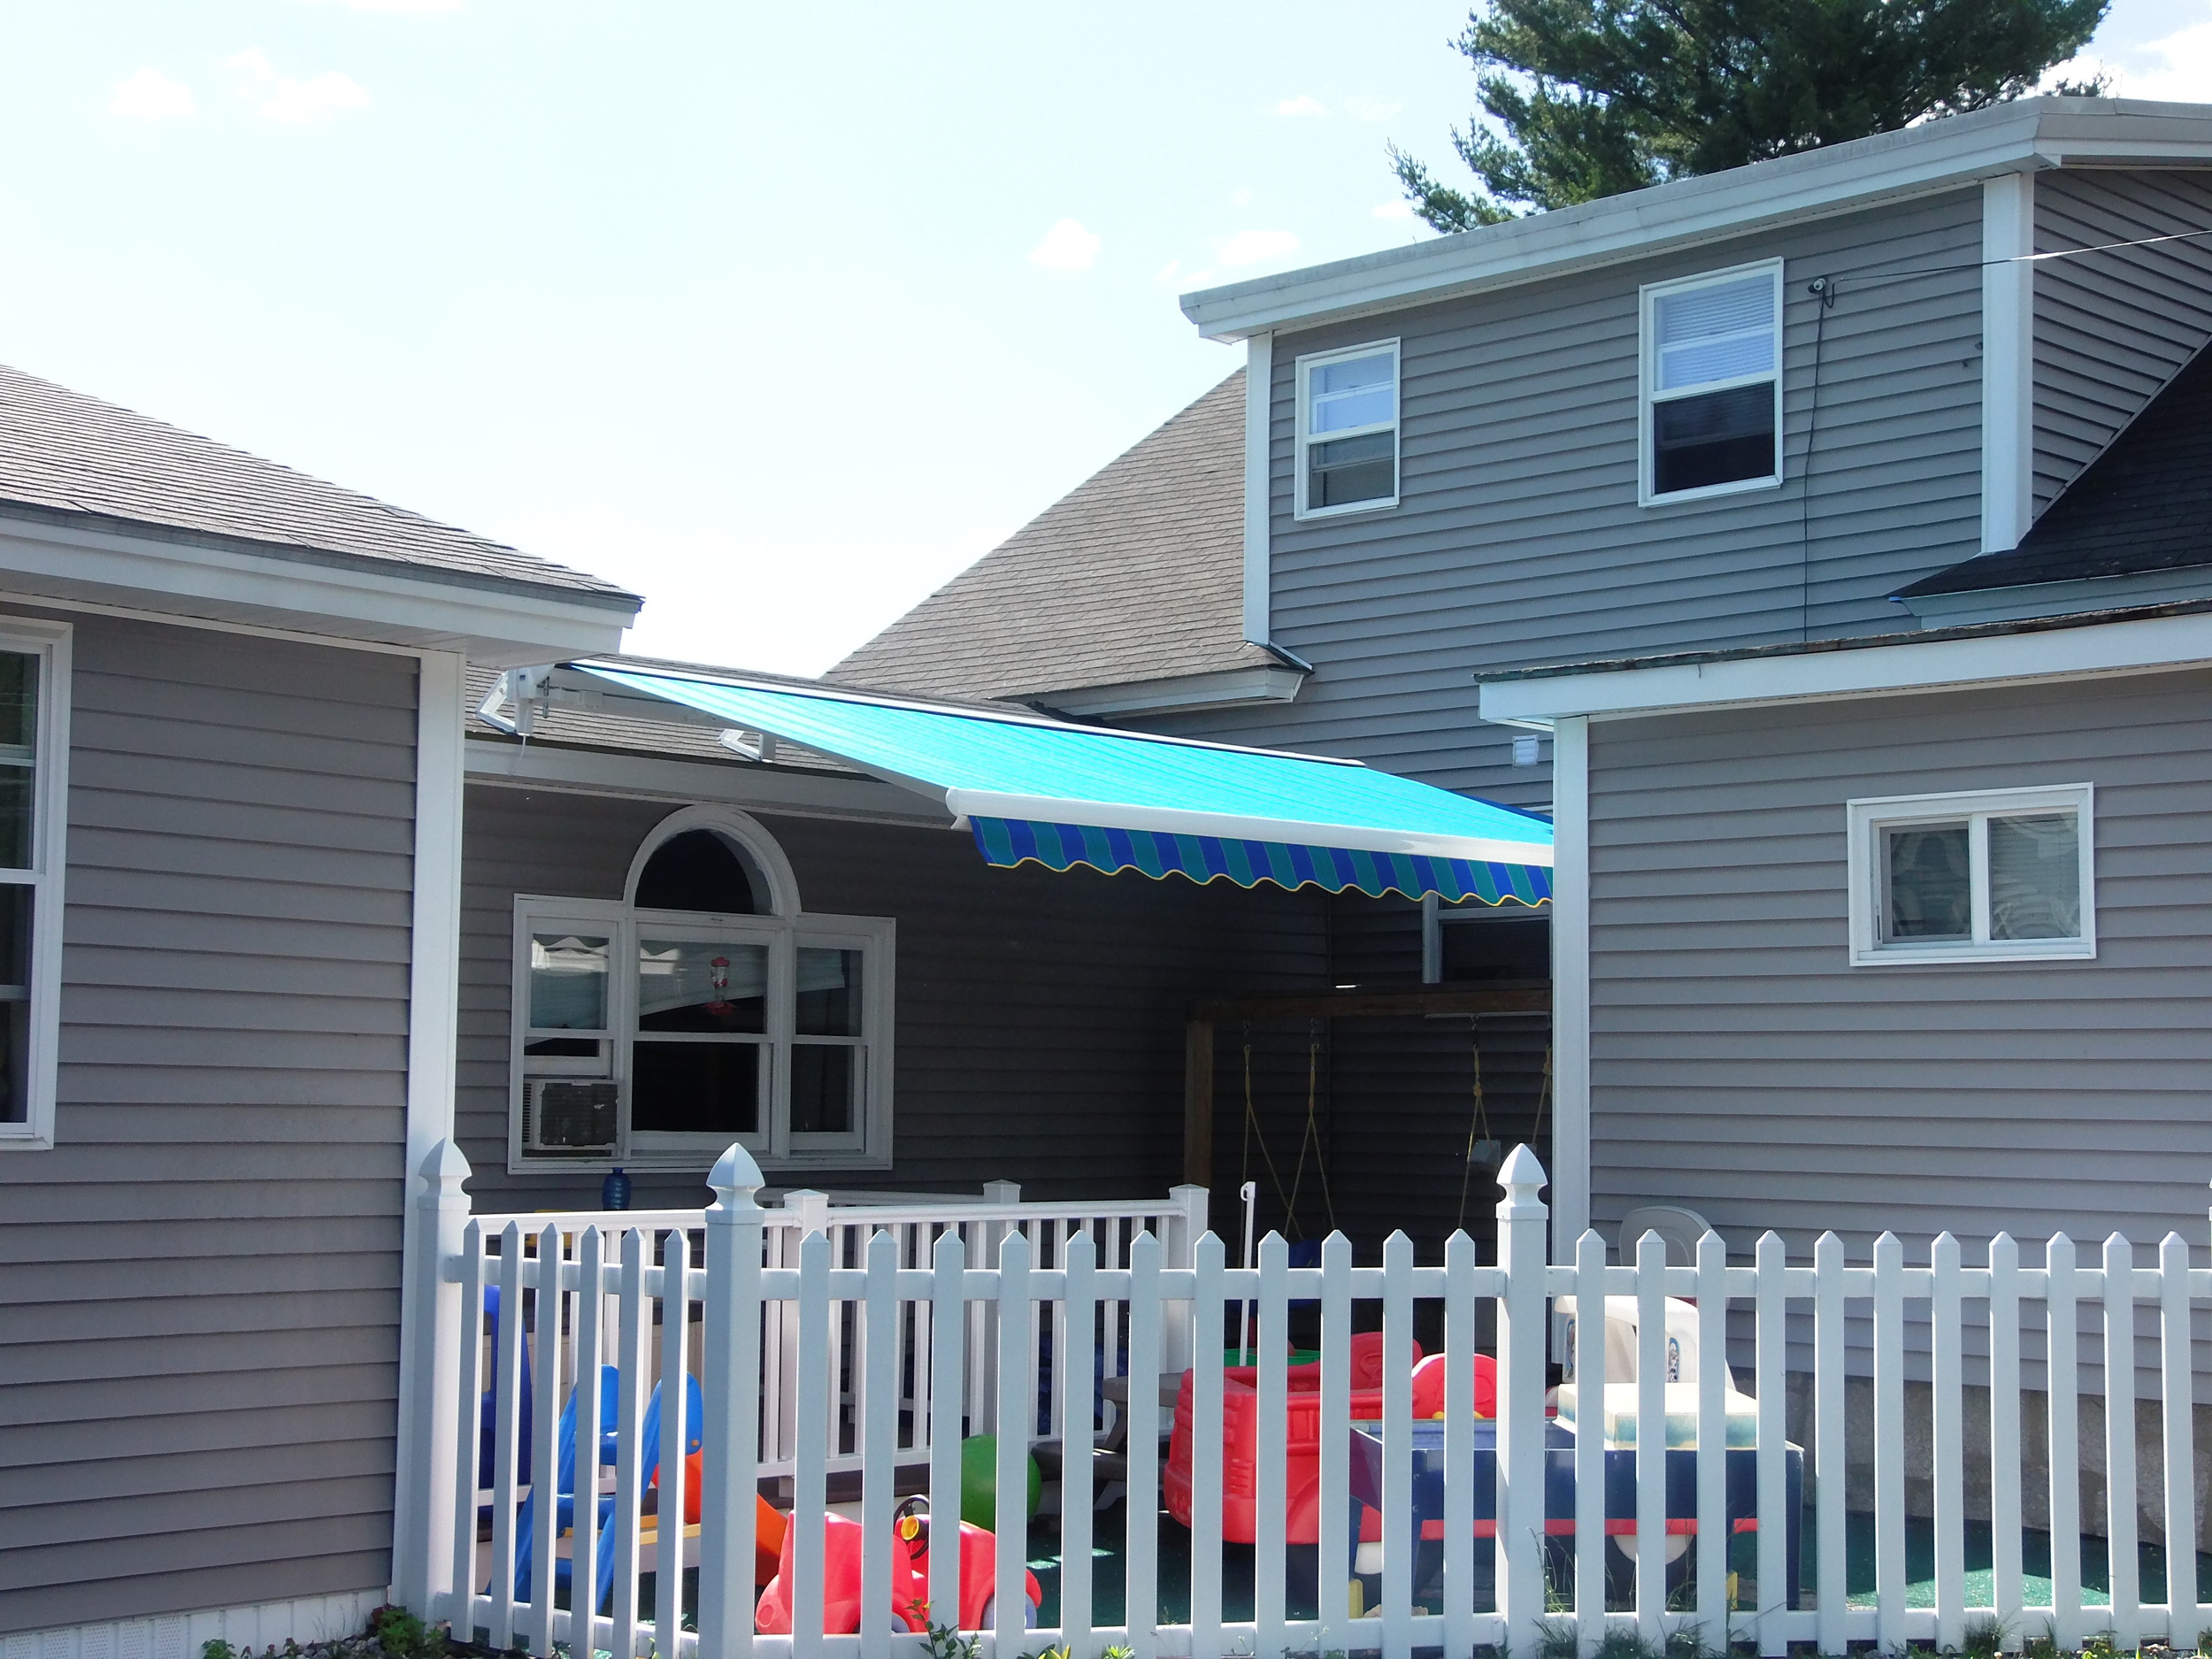 Goffstown, NH - Retractable Awning